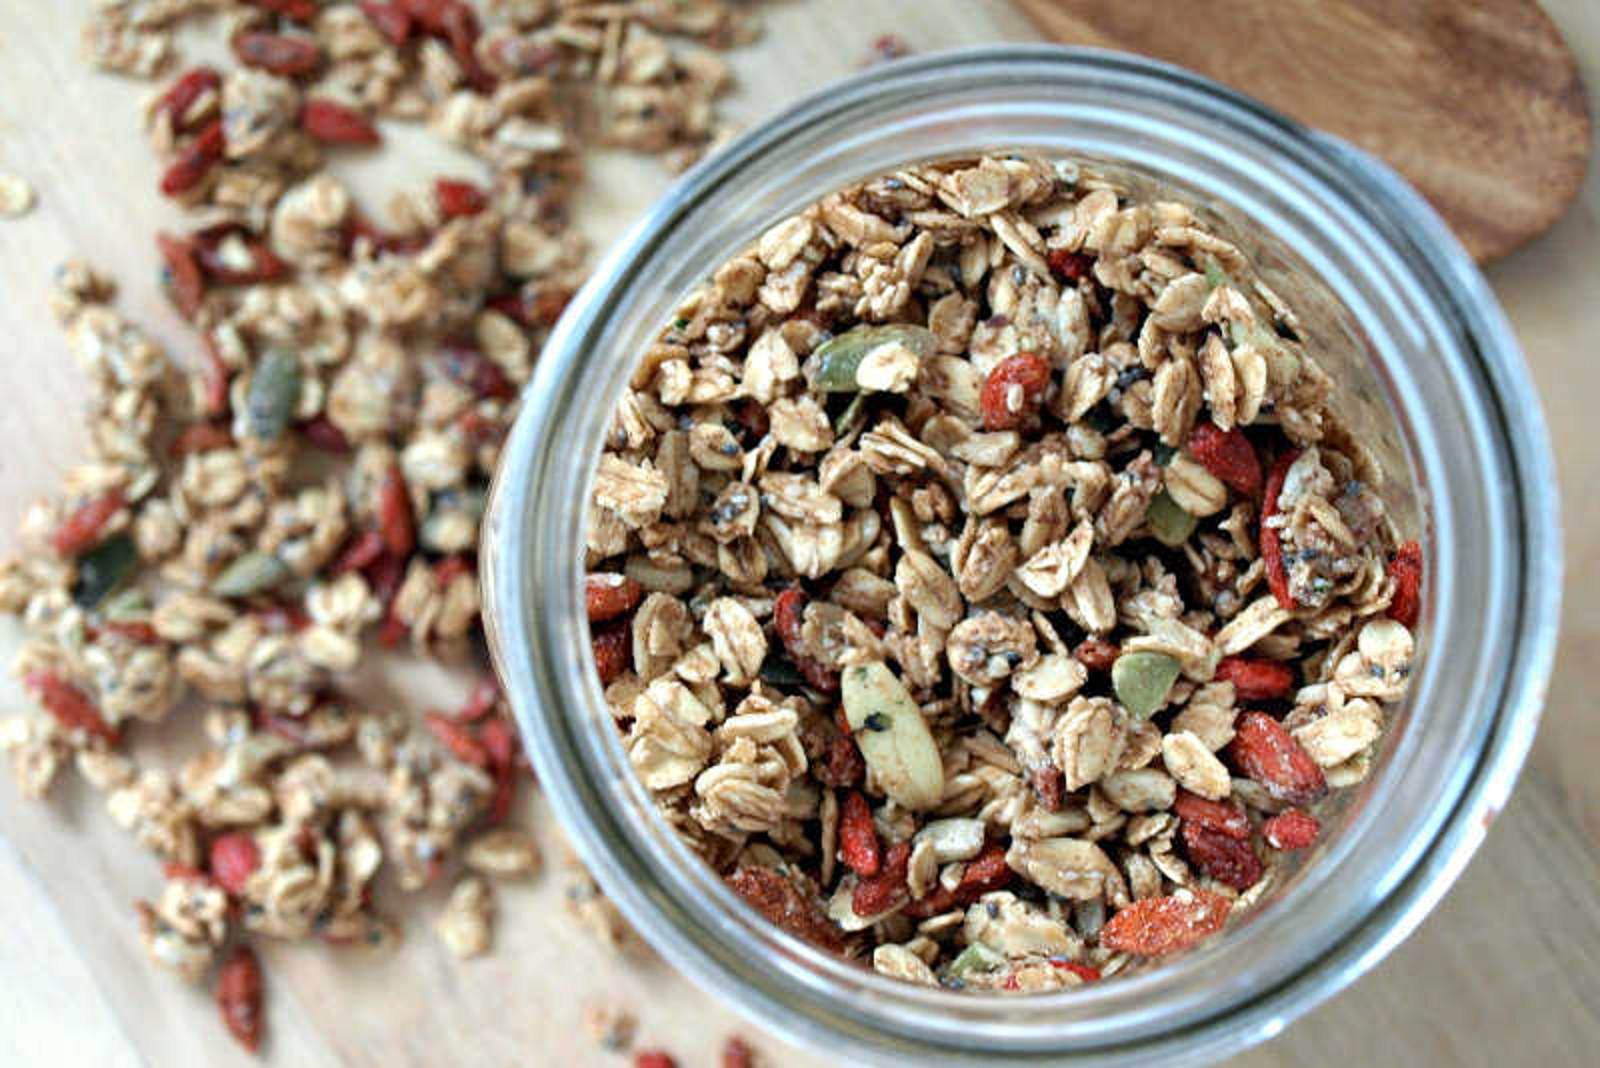 Seeds And Goji Berry Granola Vegan One Green Planet